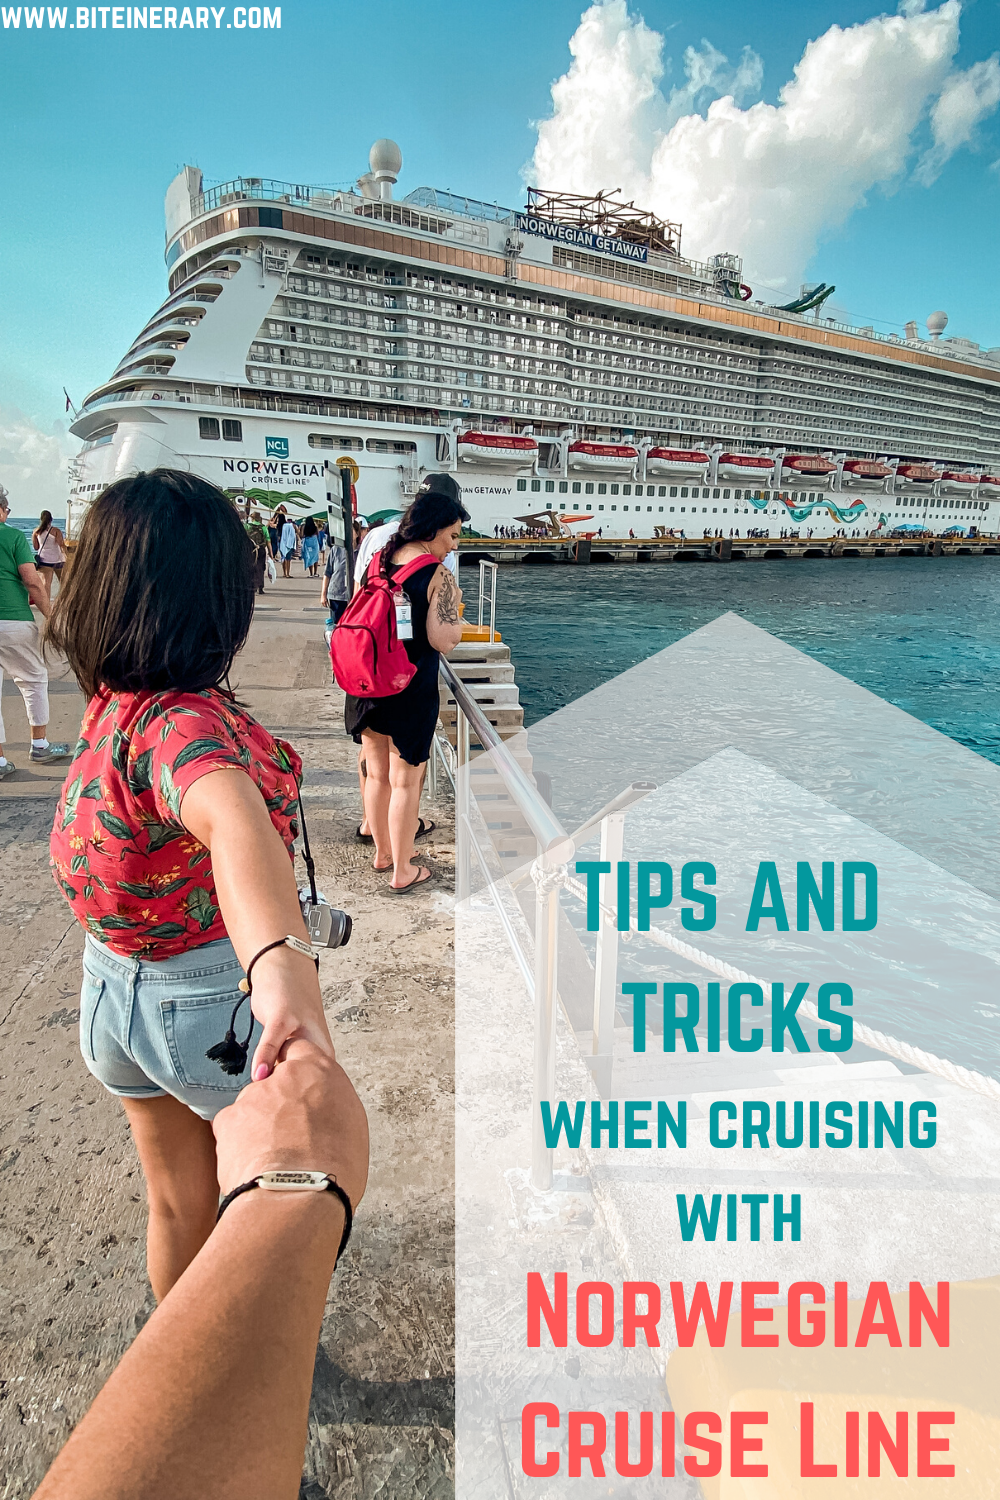 What to Expect on Your First Cruise with Norwegian Cruise Line Getaway Ship by Biteinerary